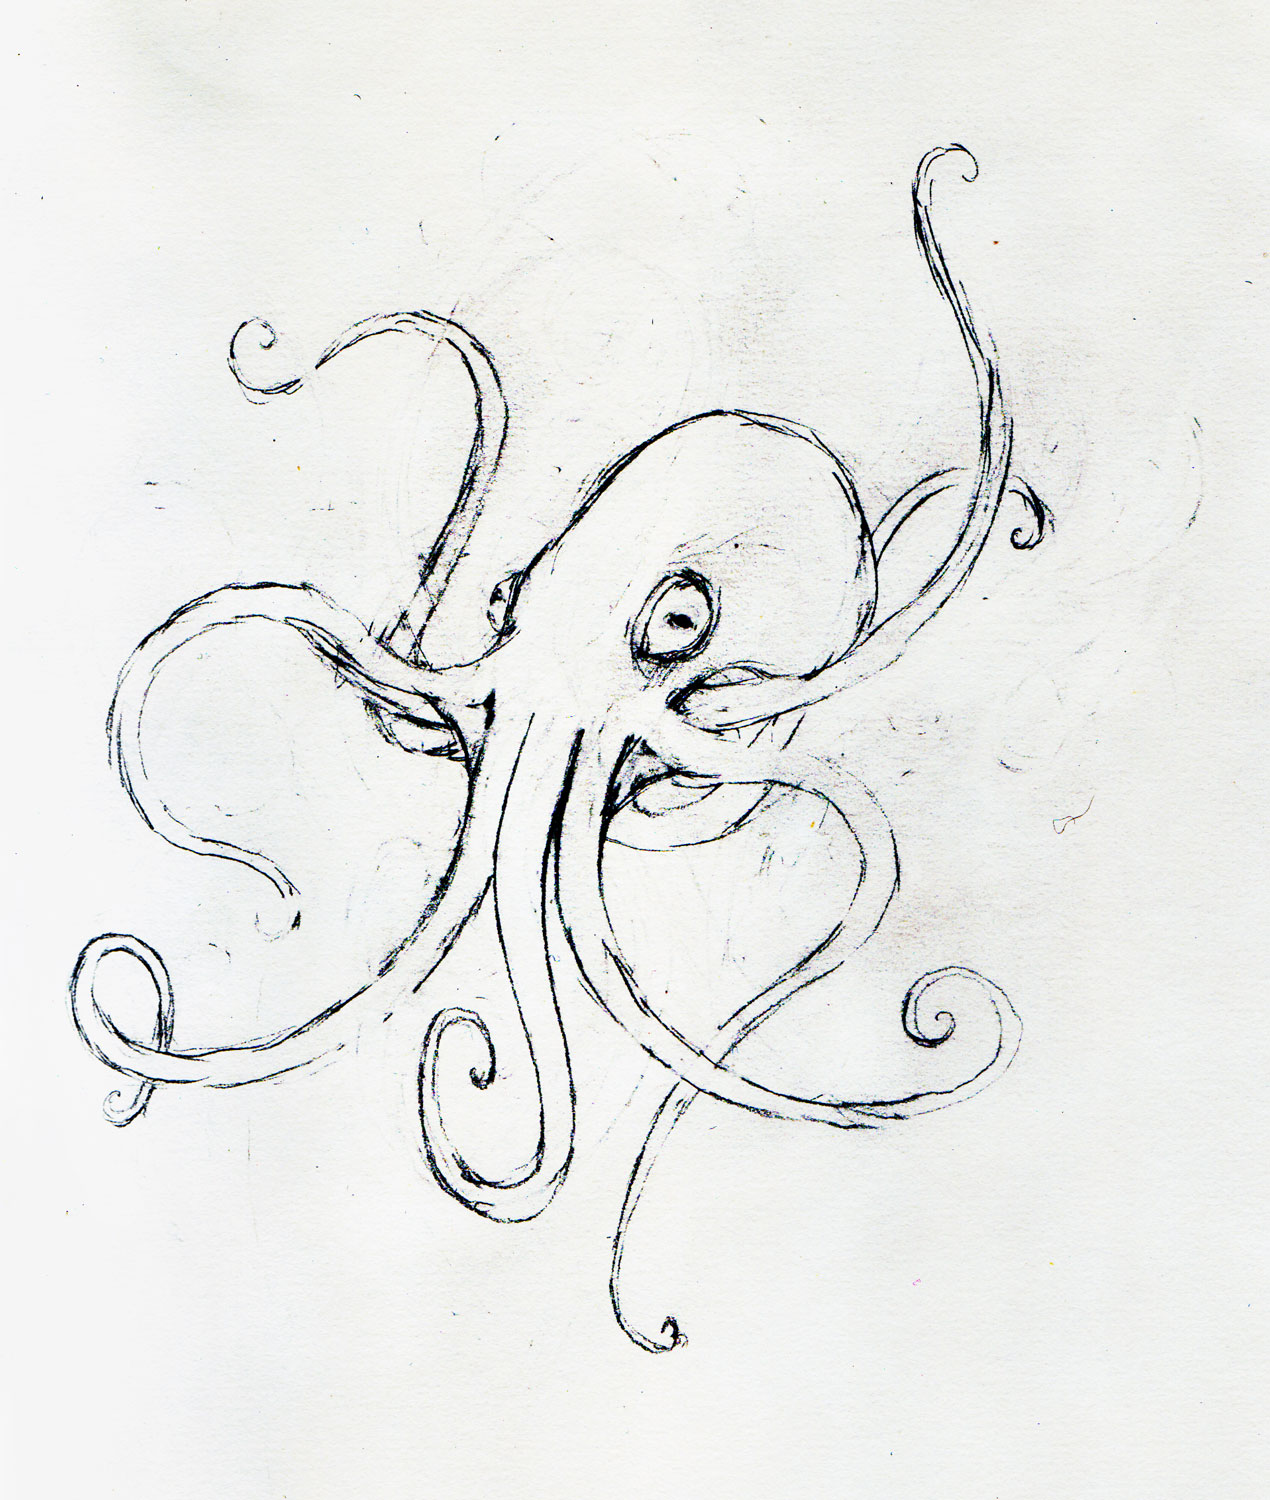 Octopus sketch leeviathan for Octopus drawing easy